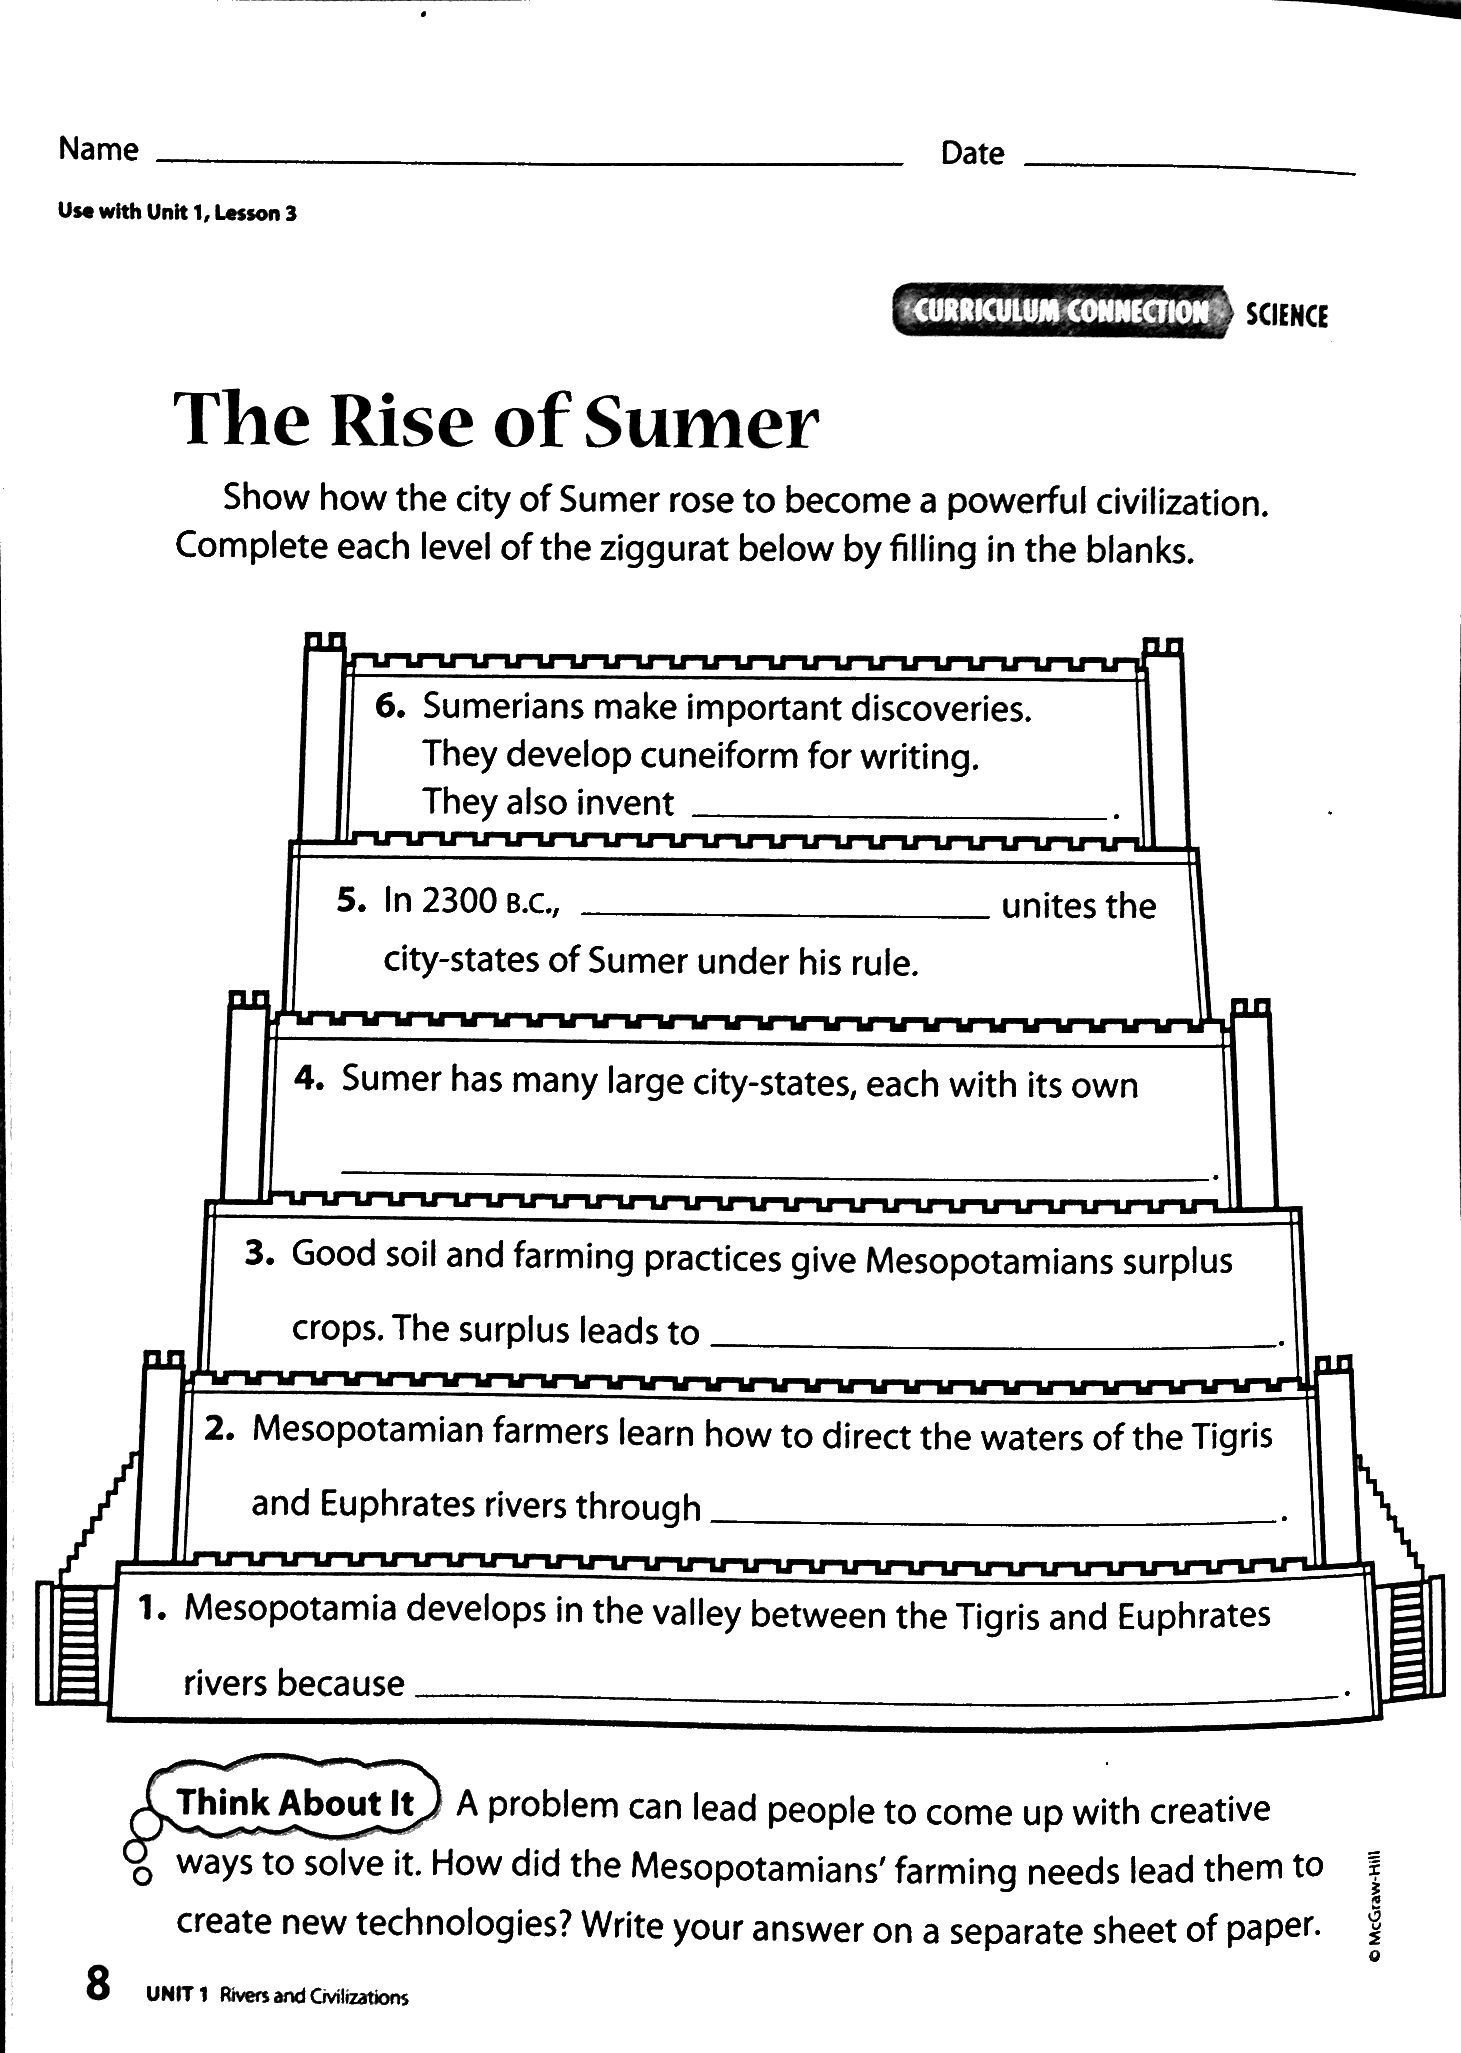 the-rise-of-sumer.jpg 1 [ 2053 x 1461 Pixel ]